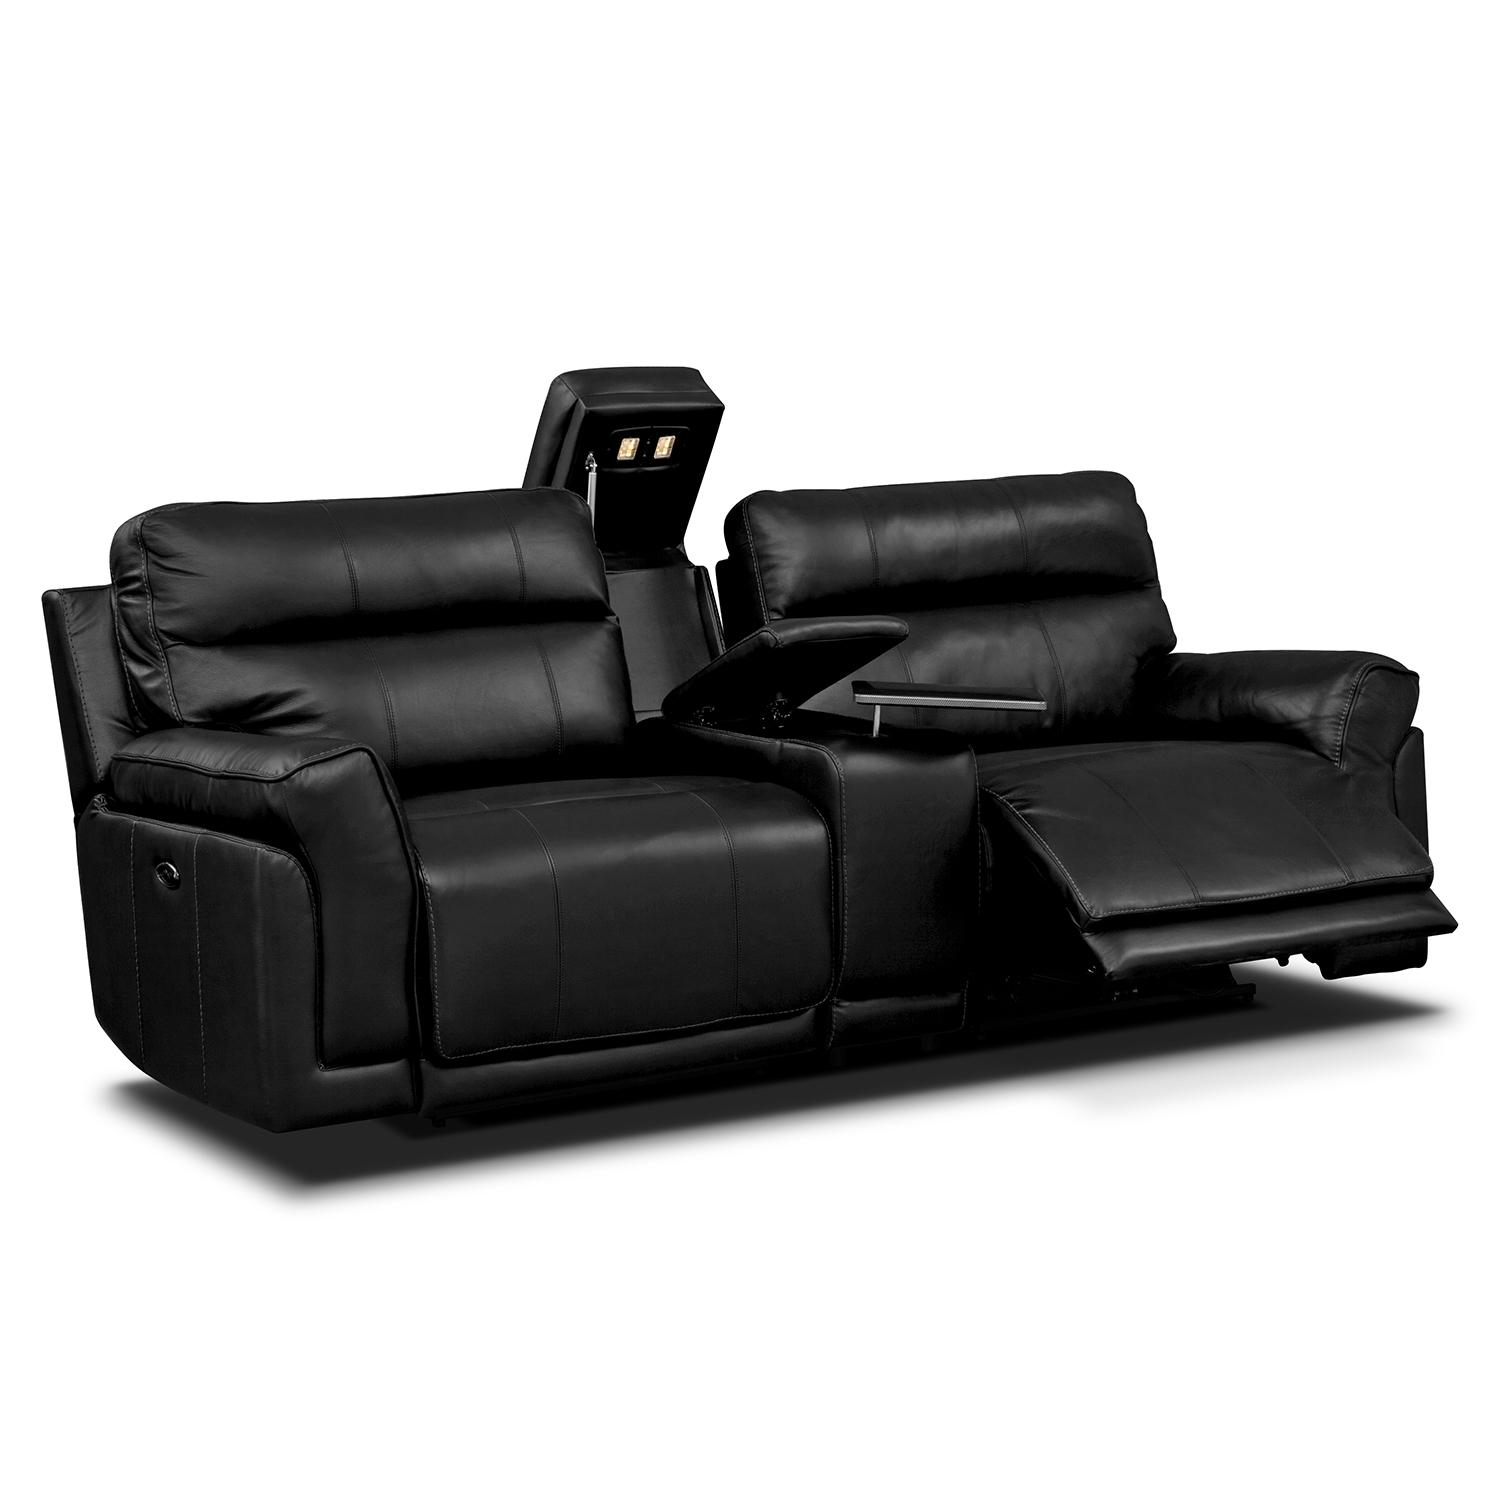 New Double Recliner Sofa With Console 17 Sofas And Couches Set for Sofas With Console